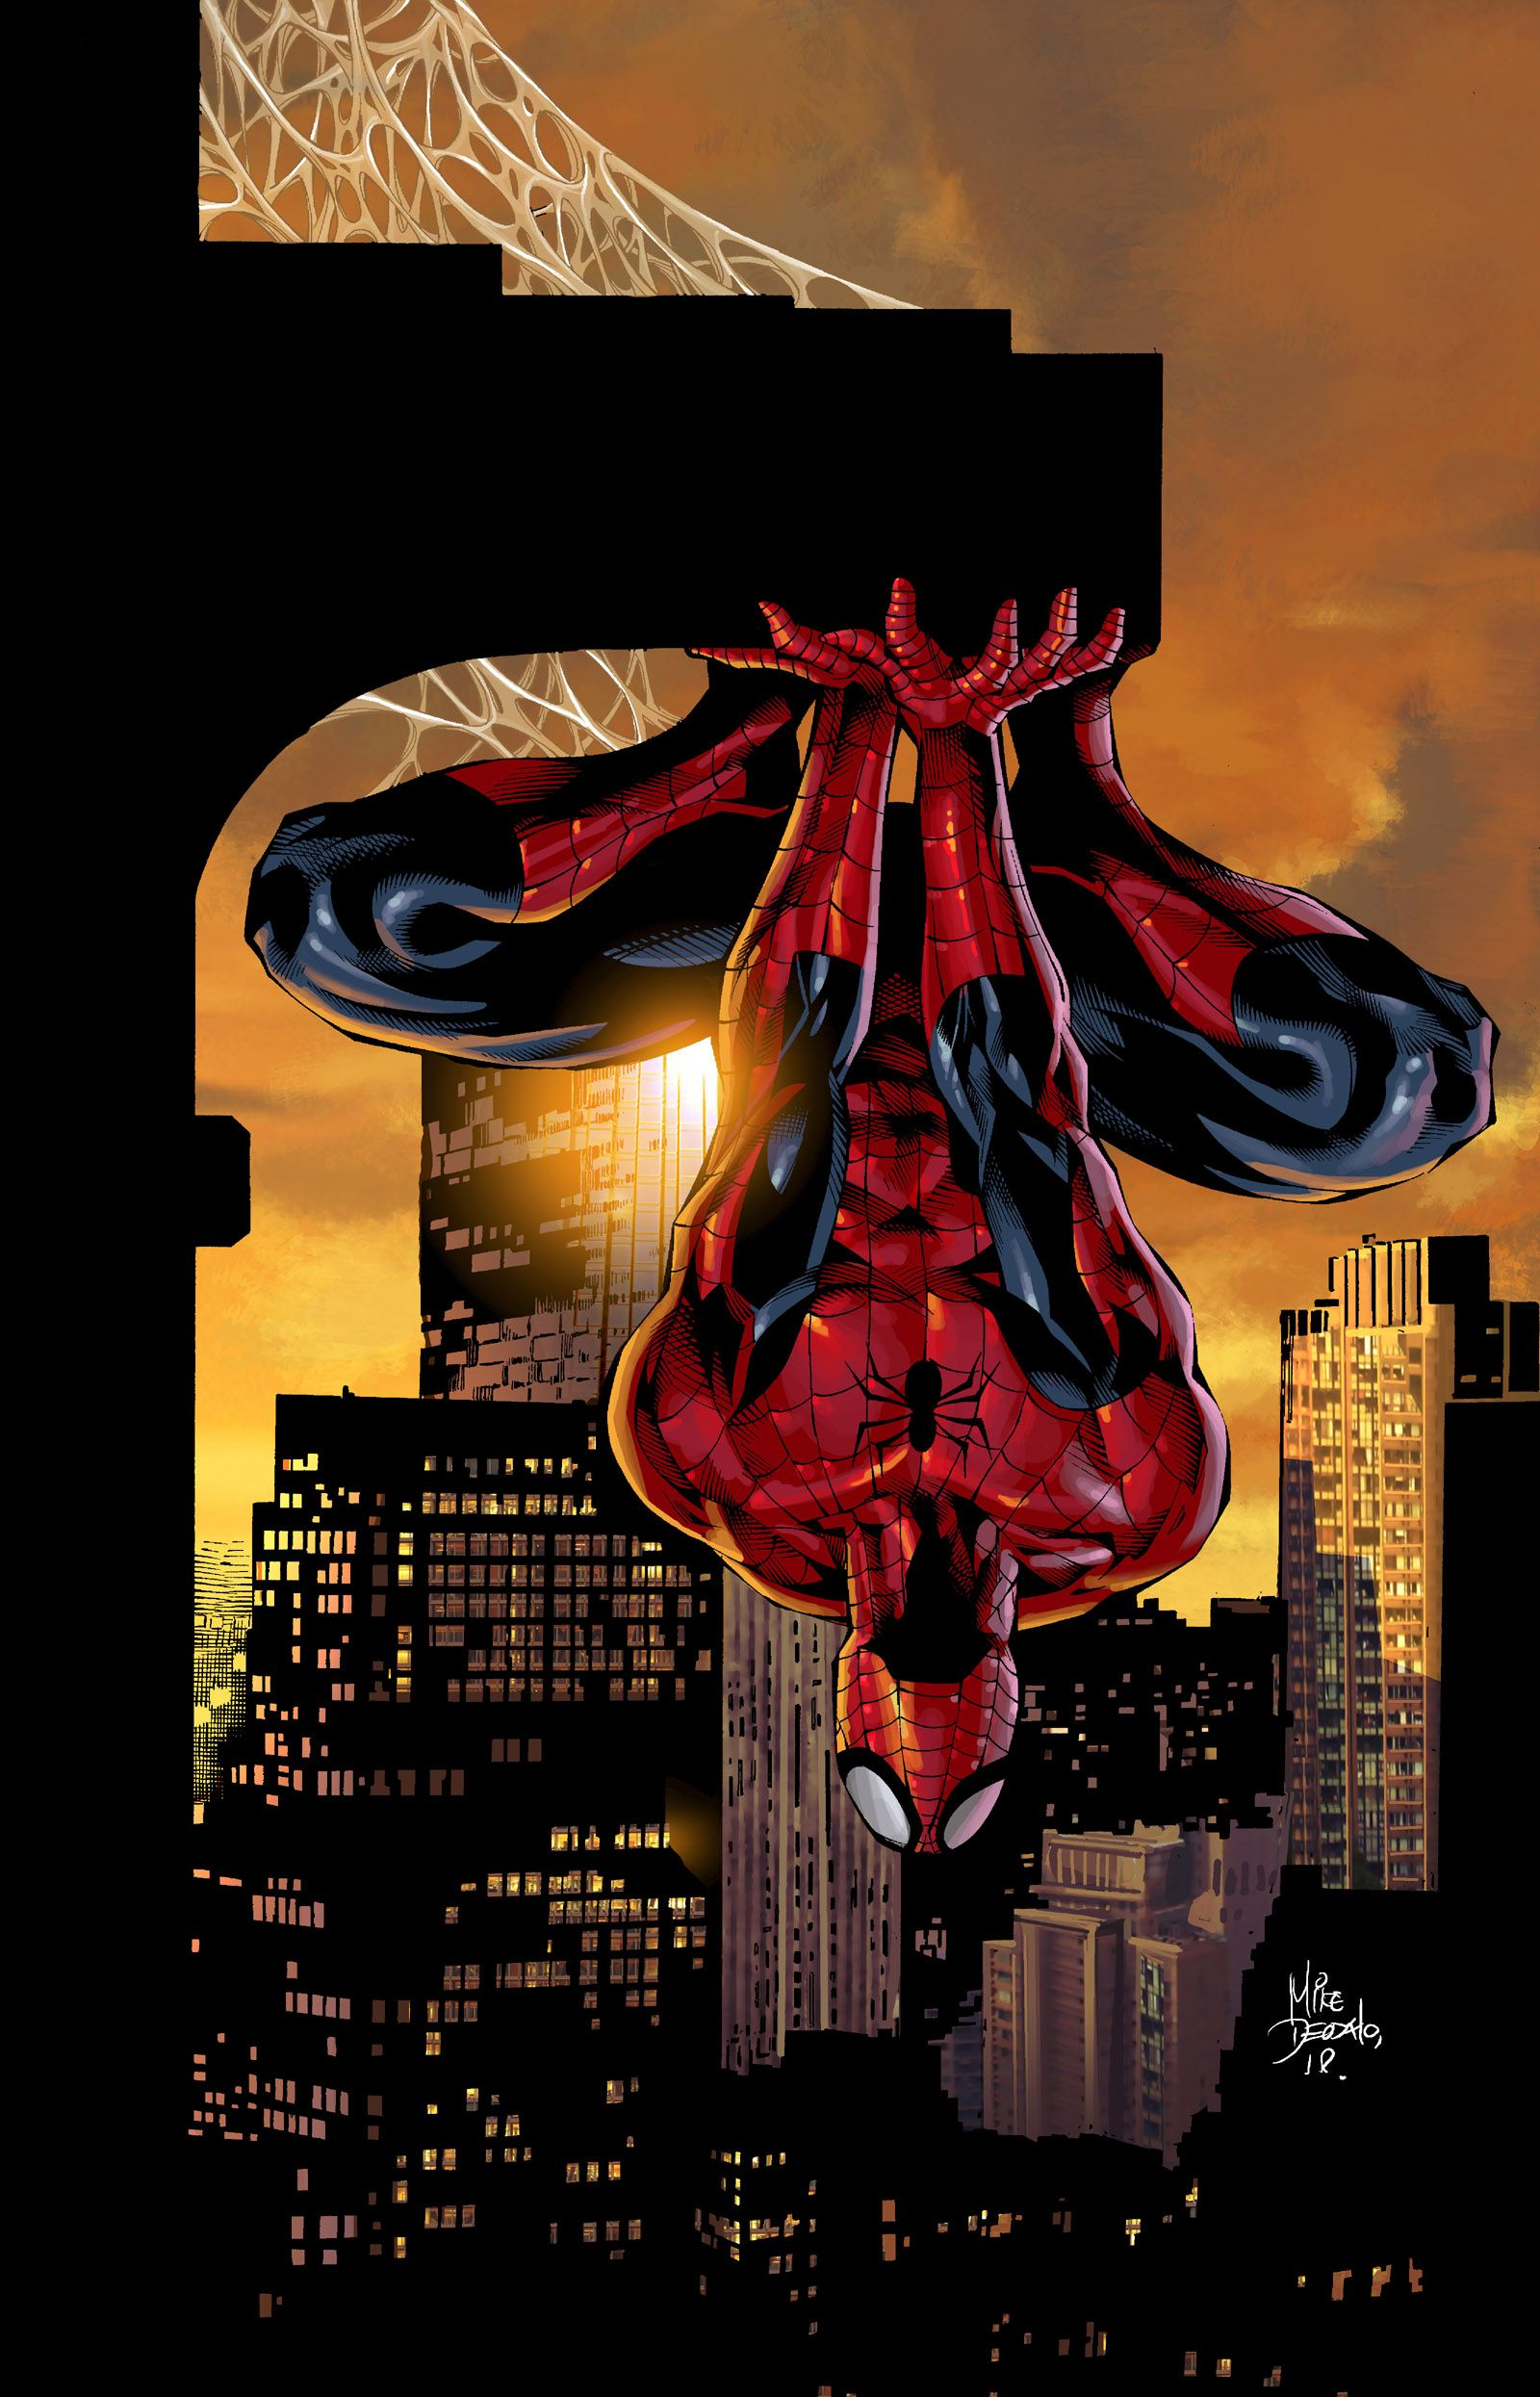 The Amazing Spider-Man - Mike Deodato, Jr.